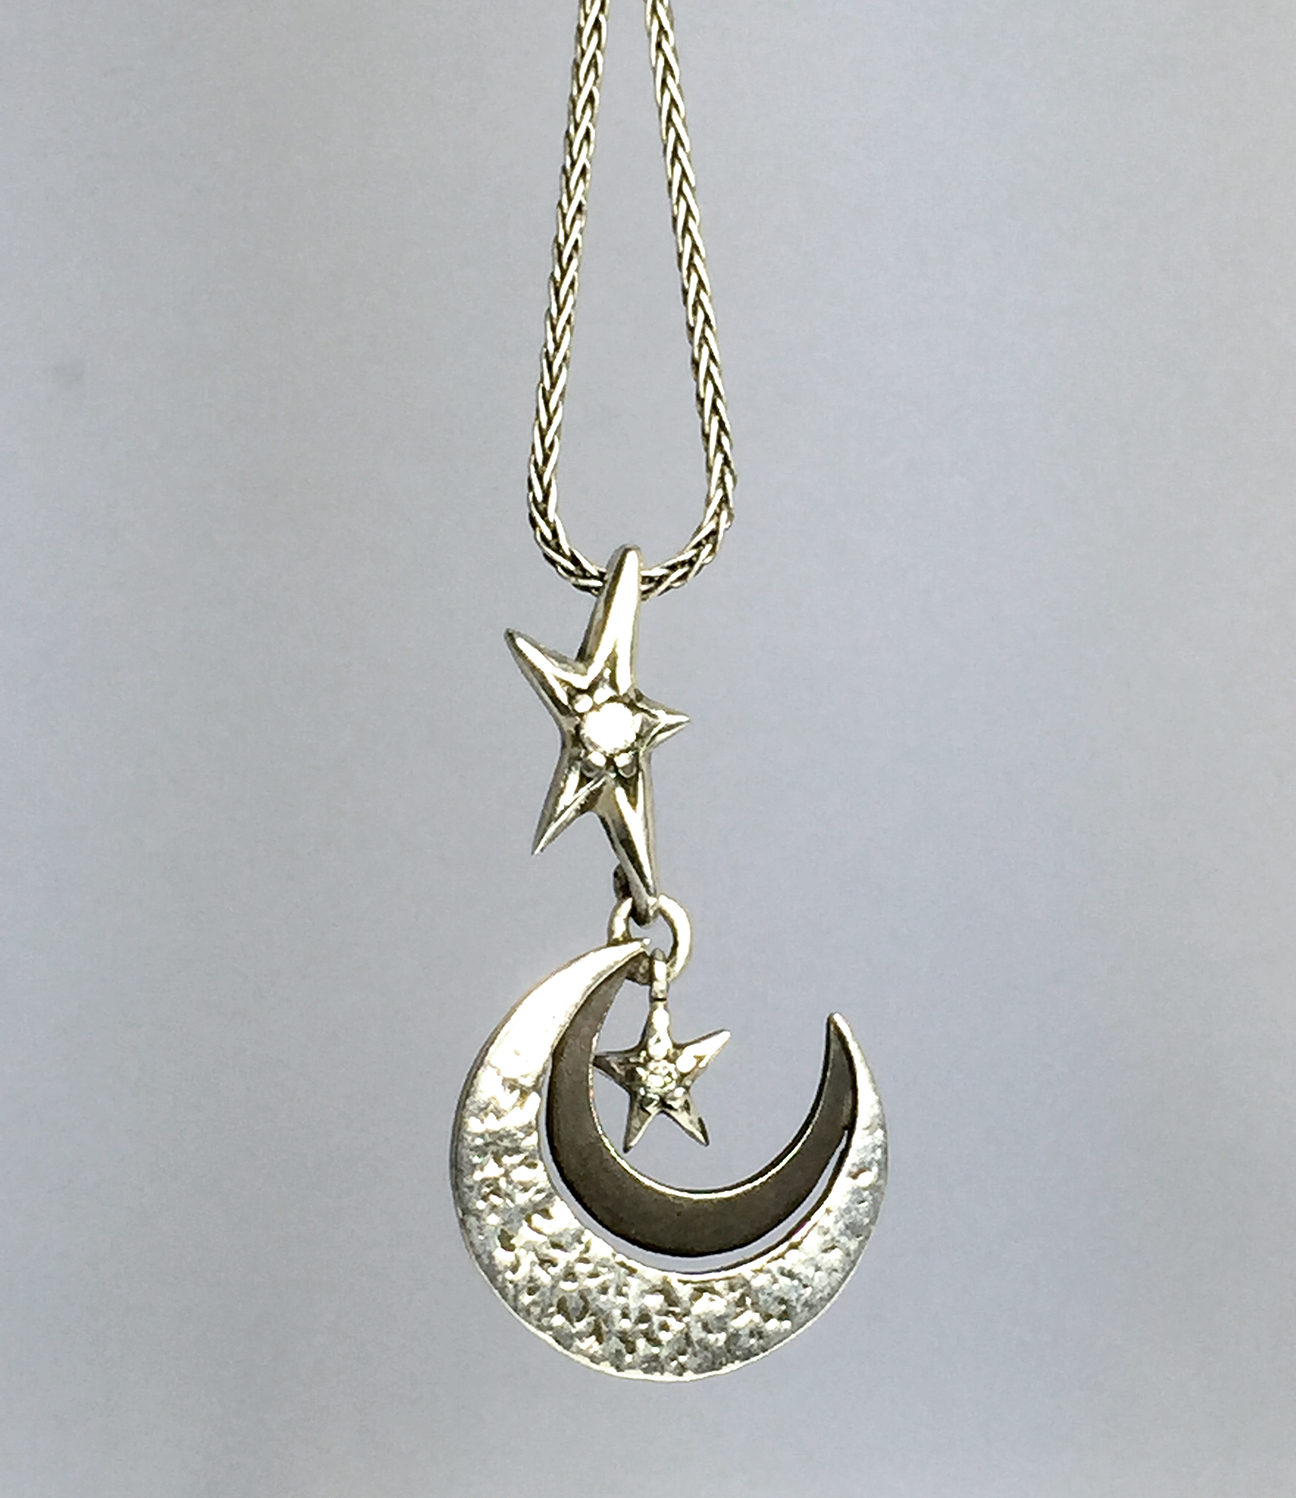 pendant amrita moon product beaded nkc singh necklace gunmetal jewelry crescent shop